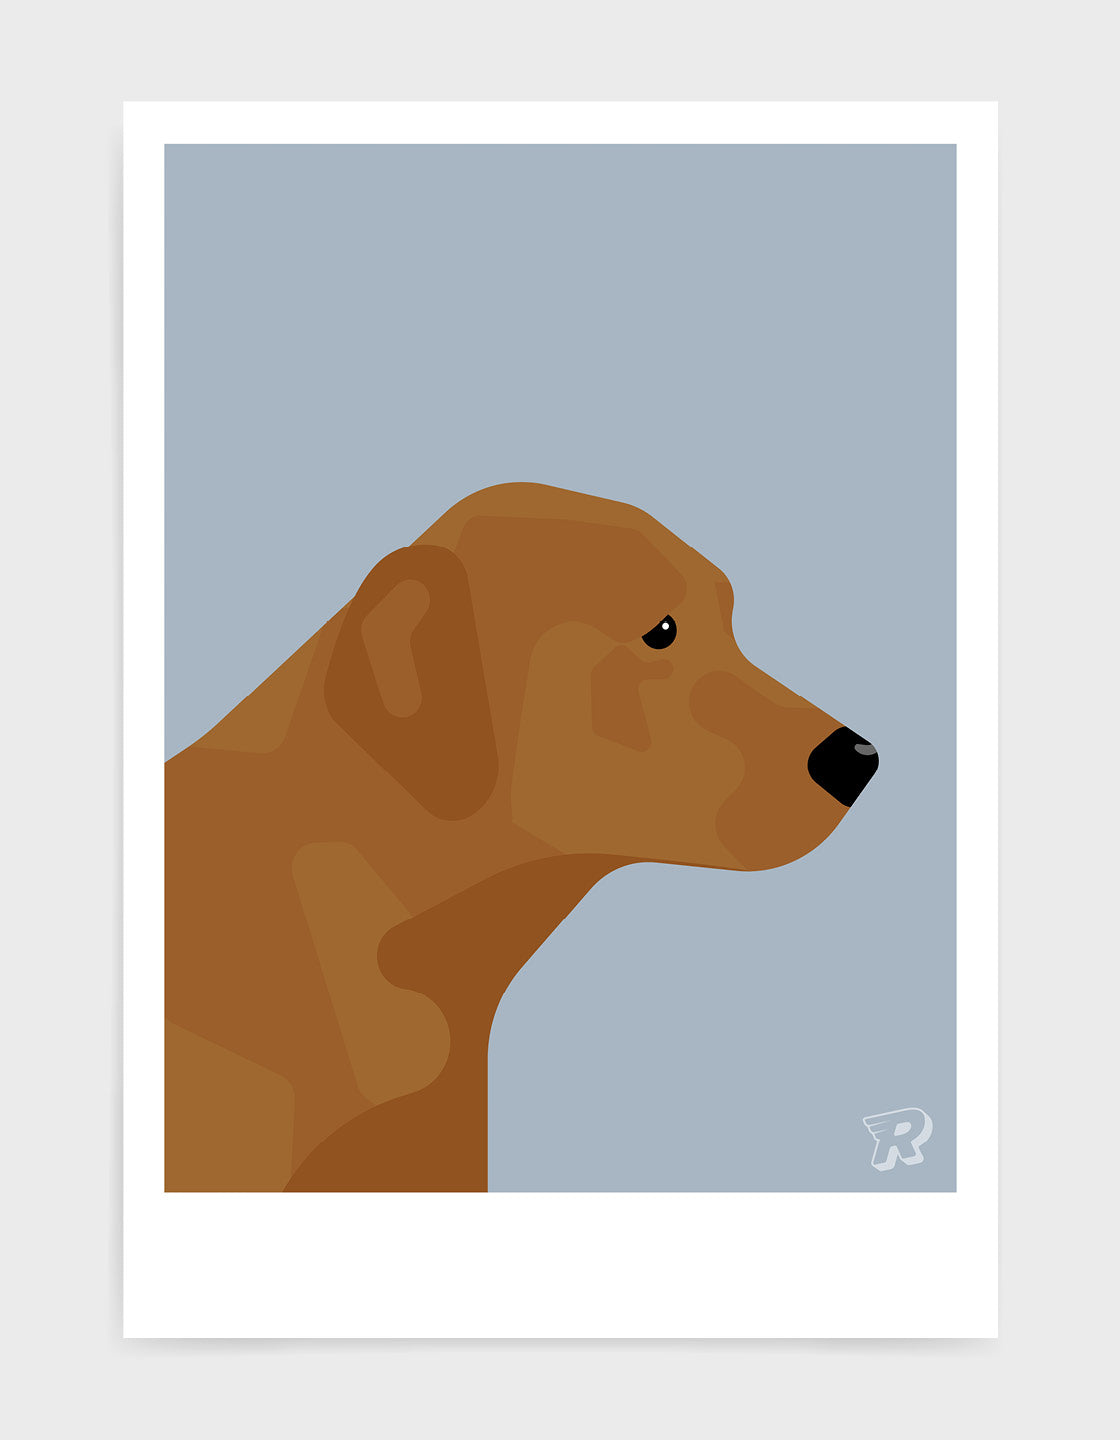 modern dog art print of a fox red labrador in profile against a light grey background